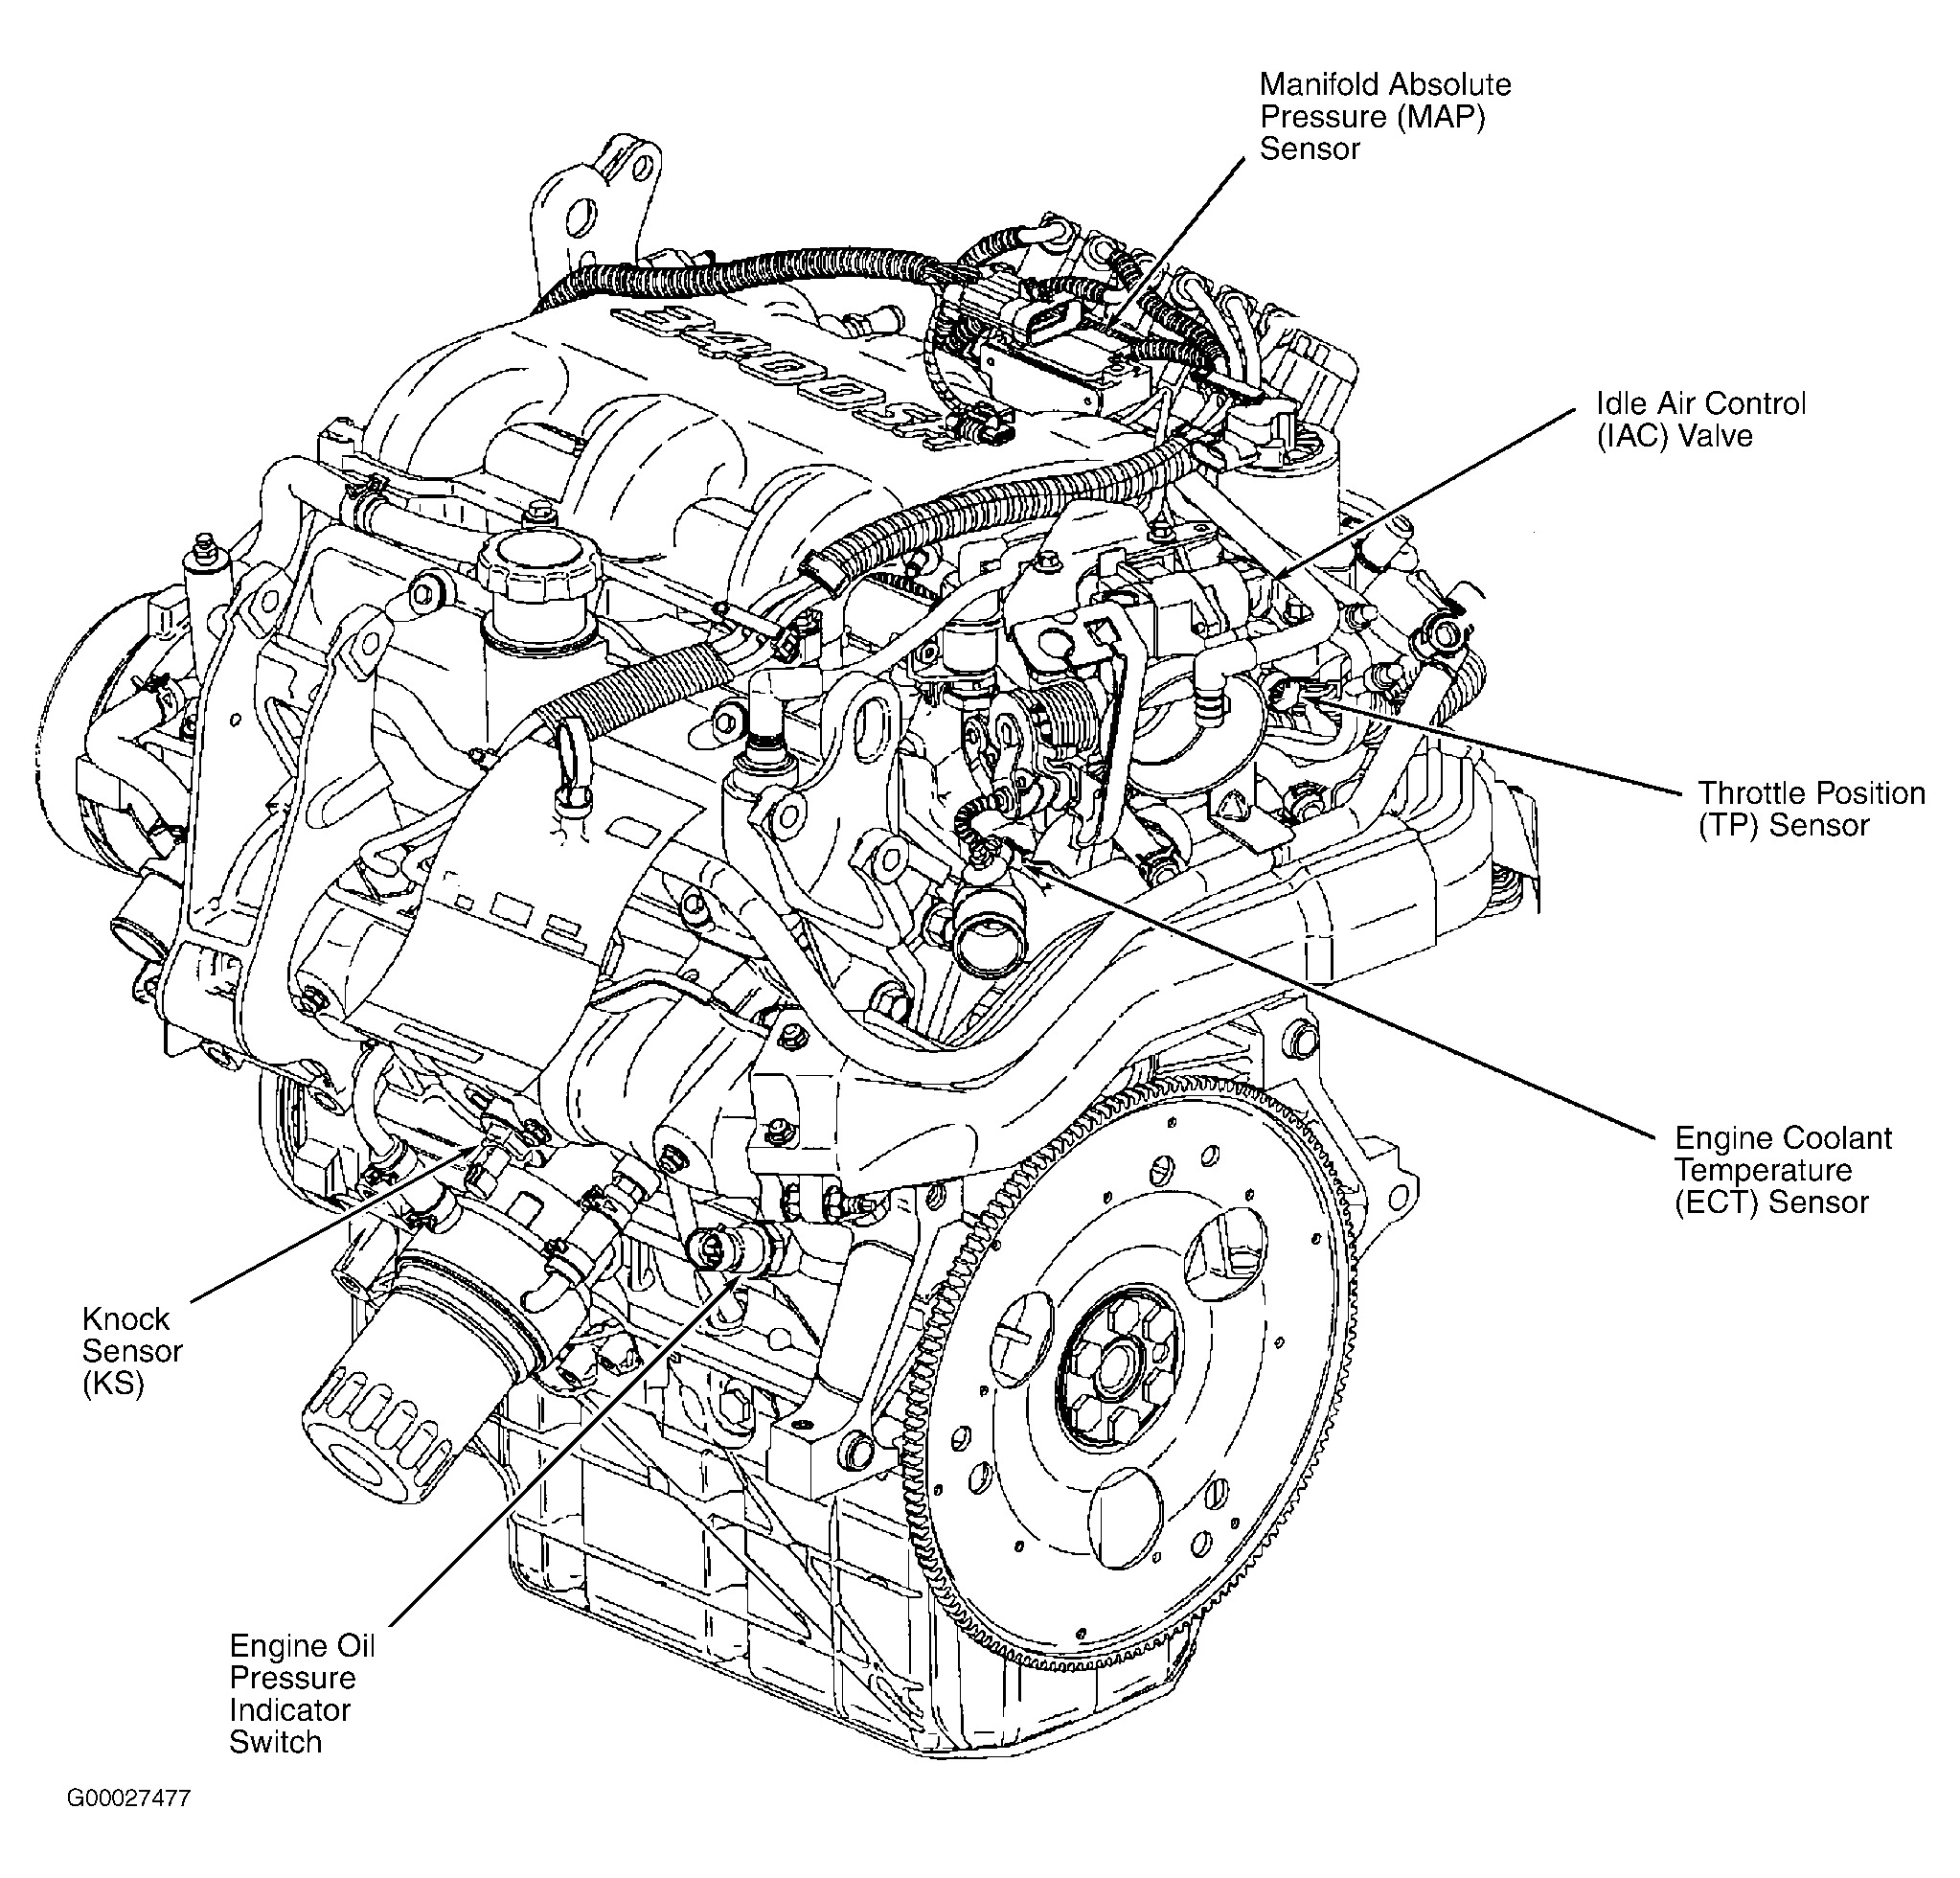 2004 chevrolet venture engine diagram 2002 chevy venture engine diagram automotive electrical system  2002 chevy venture engine diagram